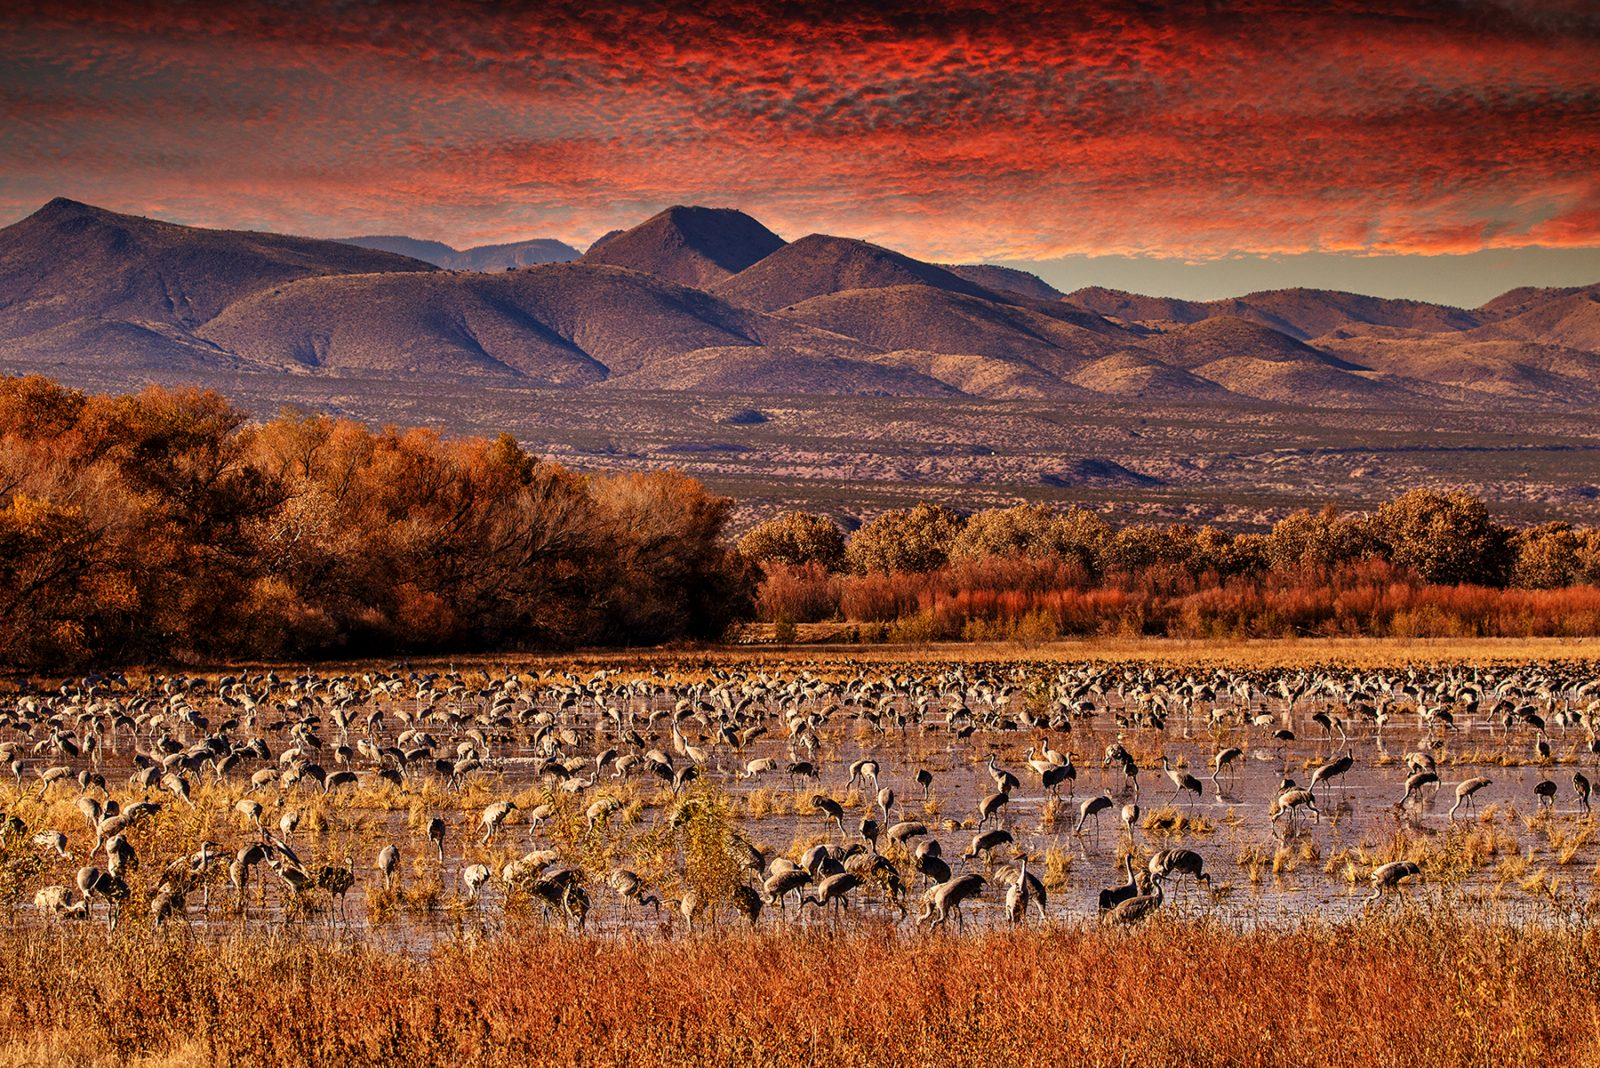 A haven for migratory birds enjoying the twilight